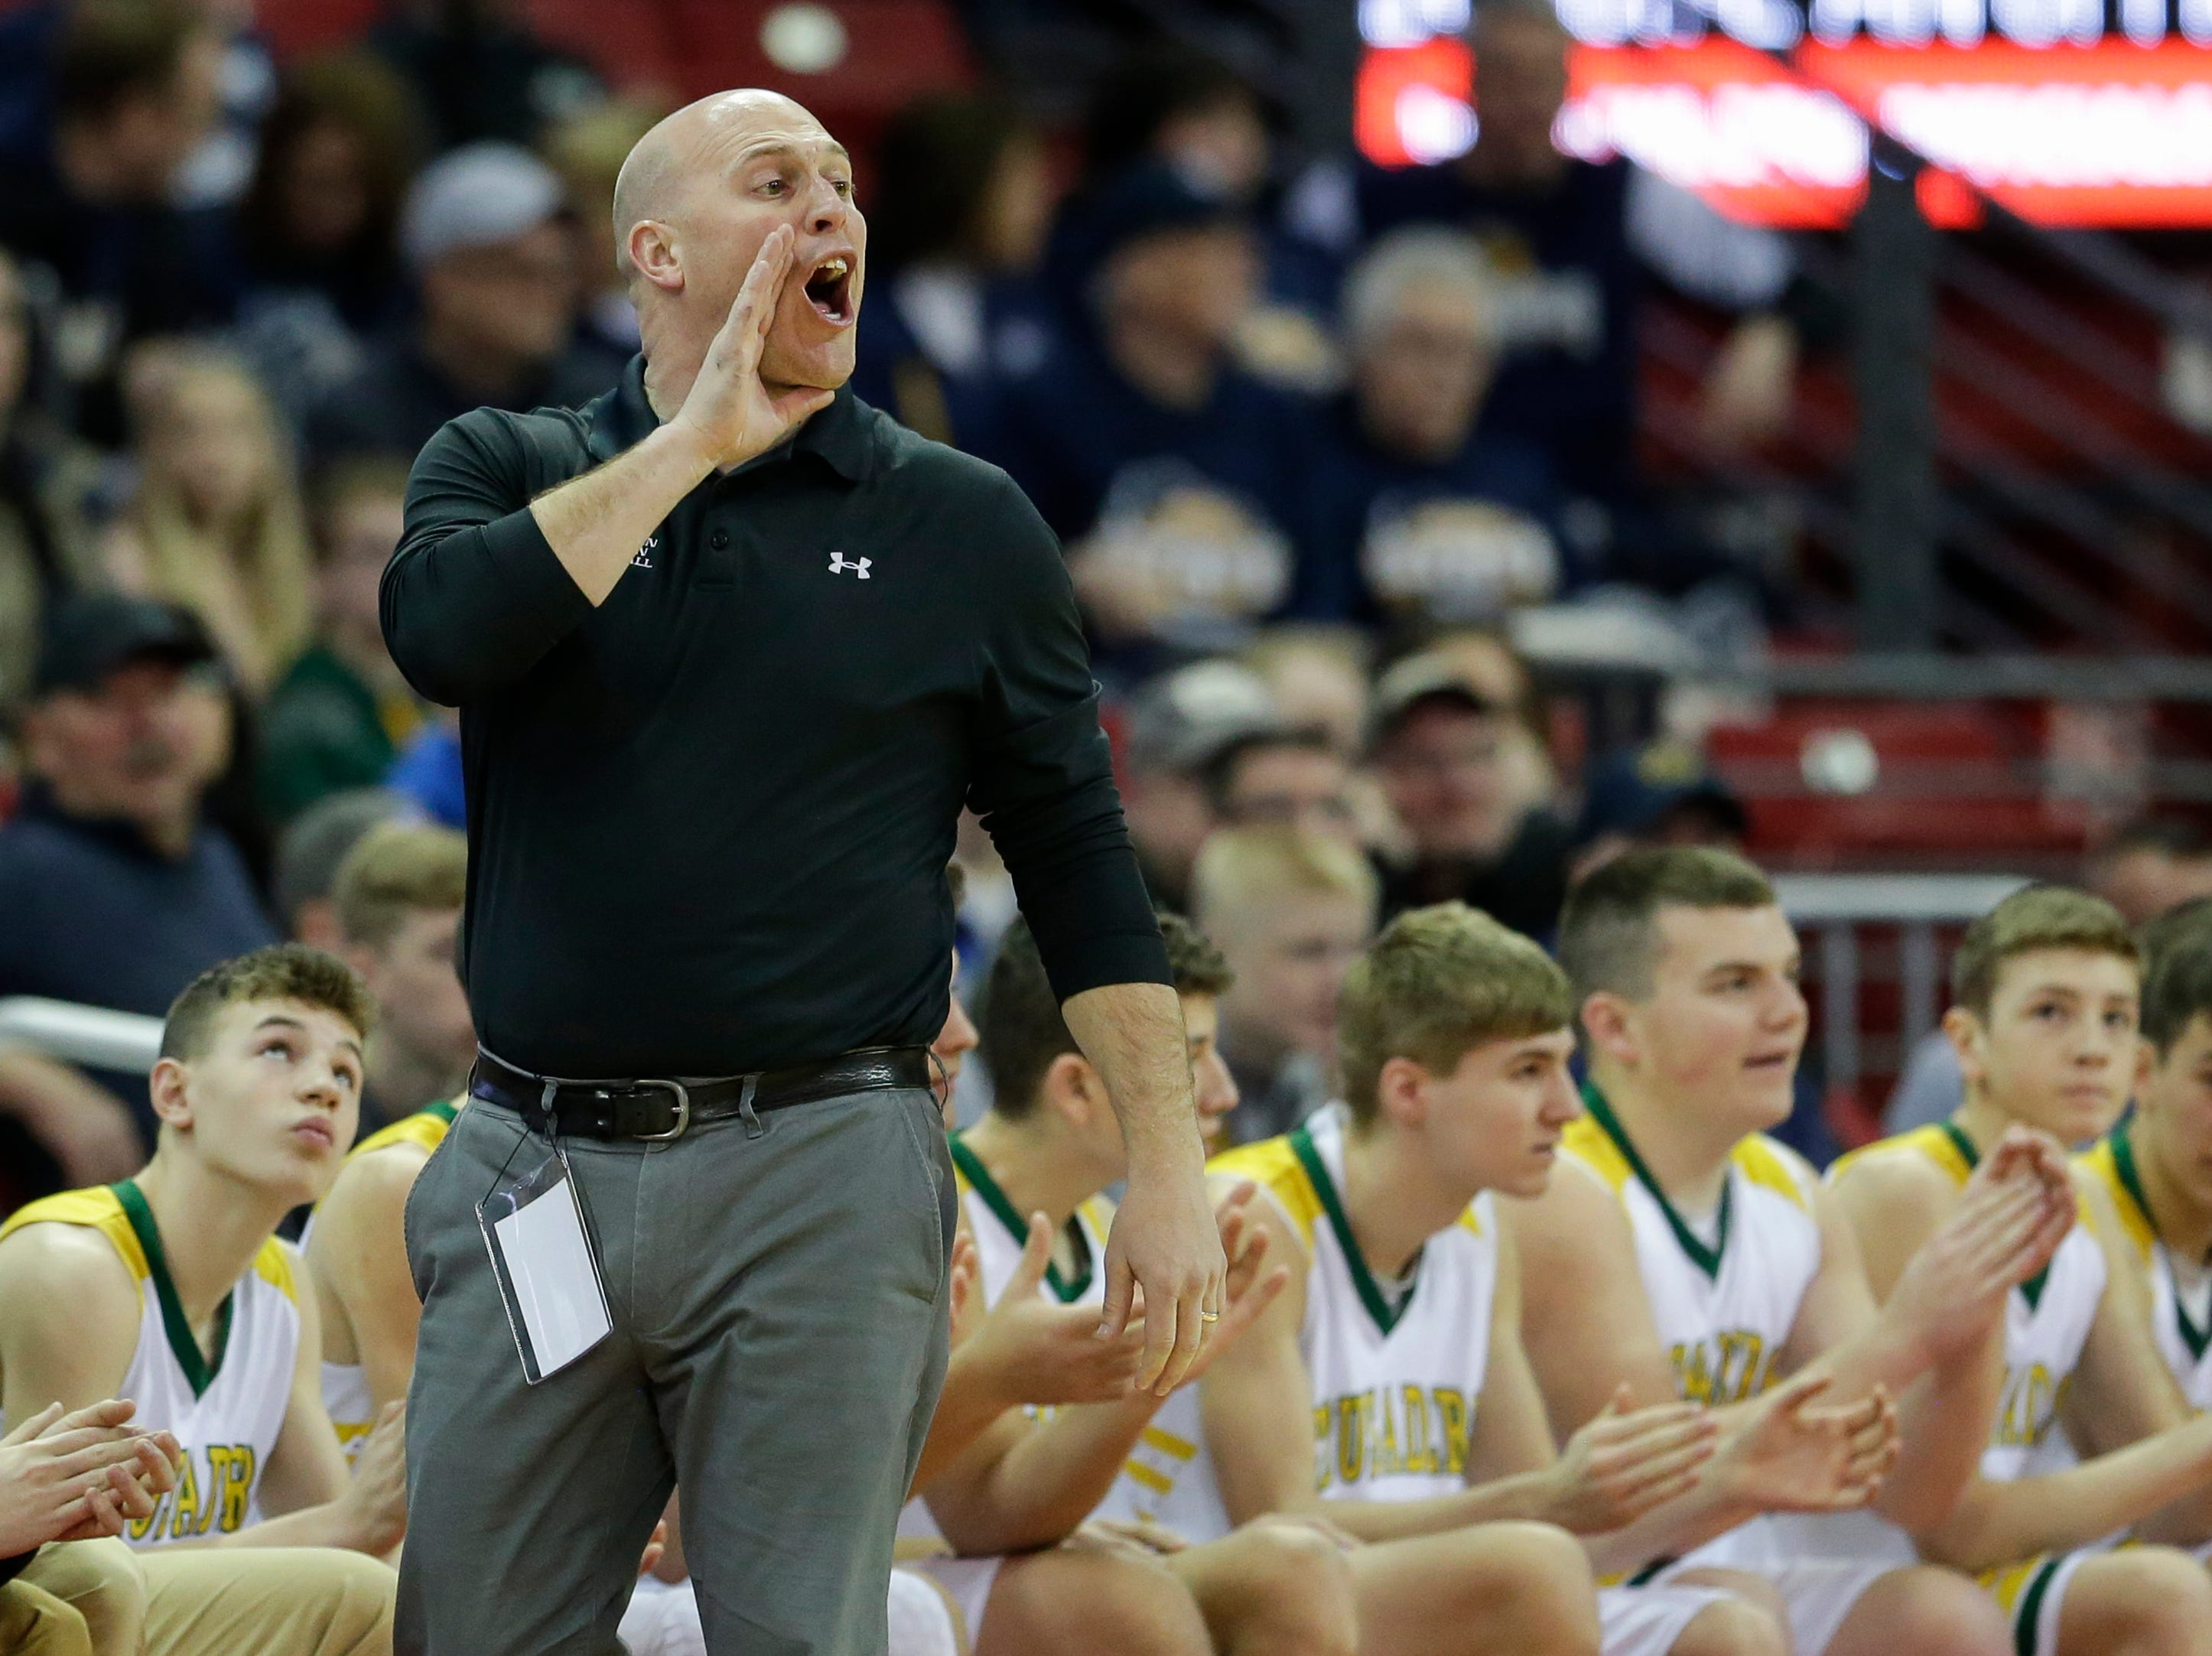 Sheboygan Area Lutheran High School's Nick Verhagen calls out a play on the sideline as they play McDonell Central Catholic High School during their WIAA Division 5 boys basketball state semifinal at the Kohl Center Friday, March 15, 2019, in Madison, Wis.